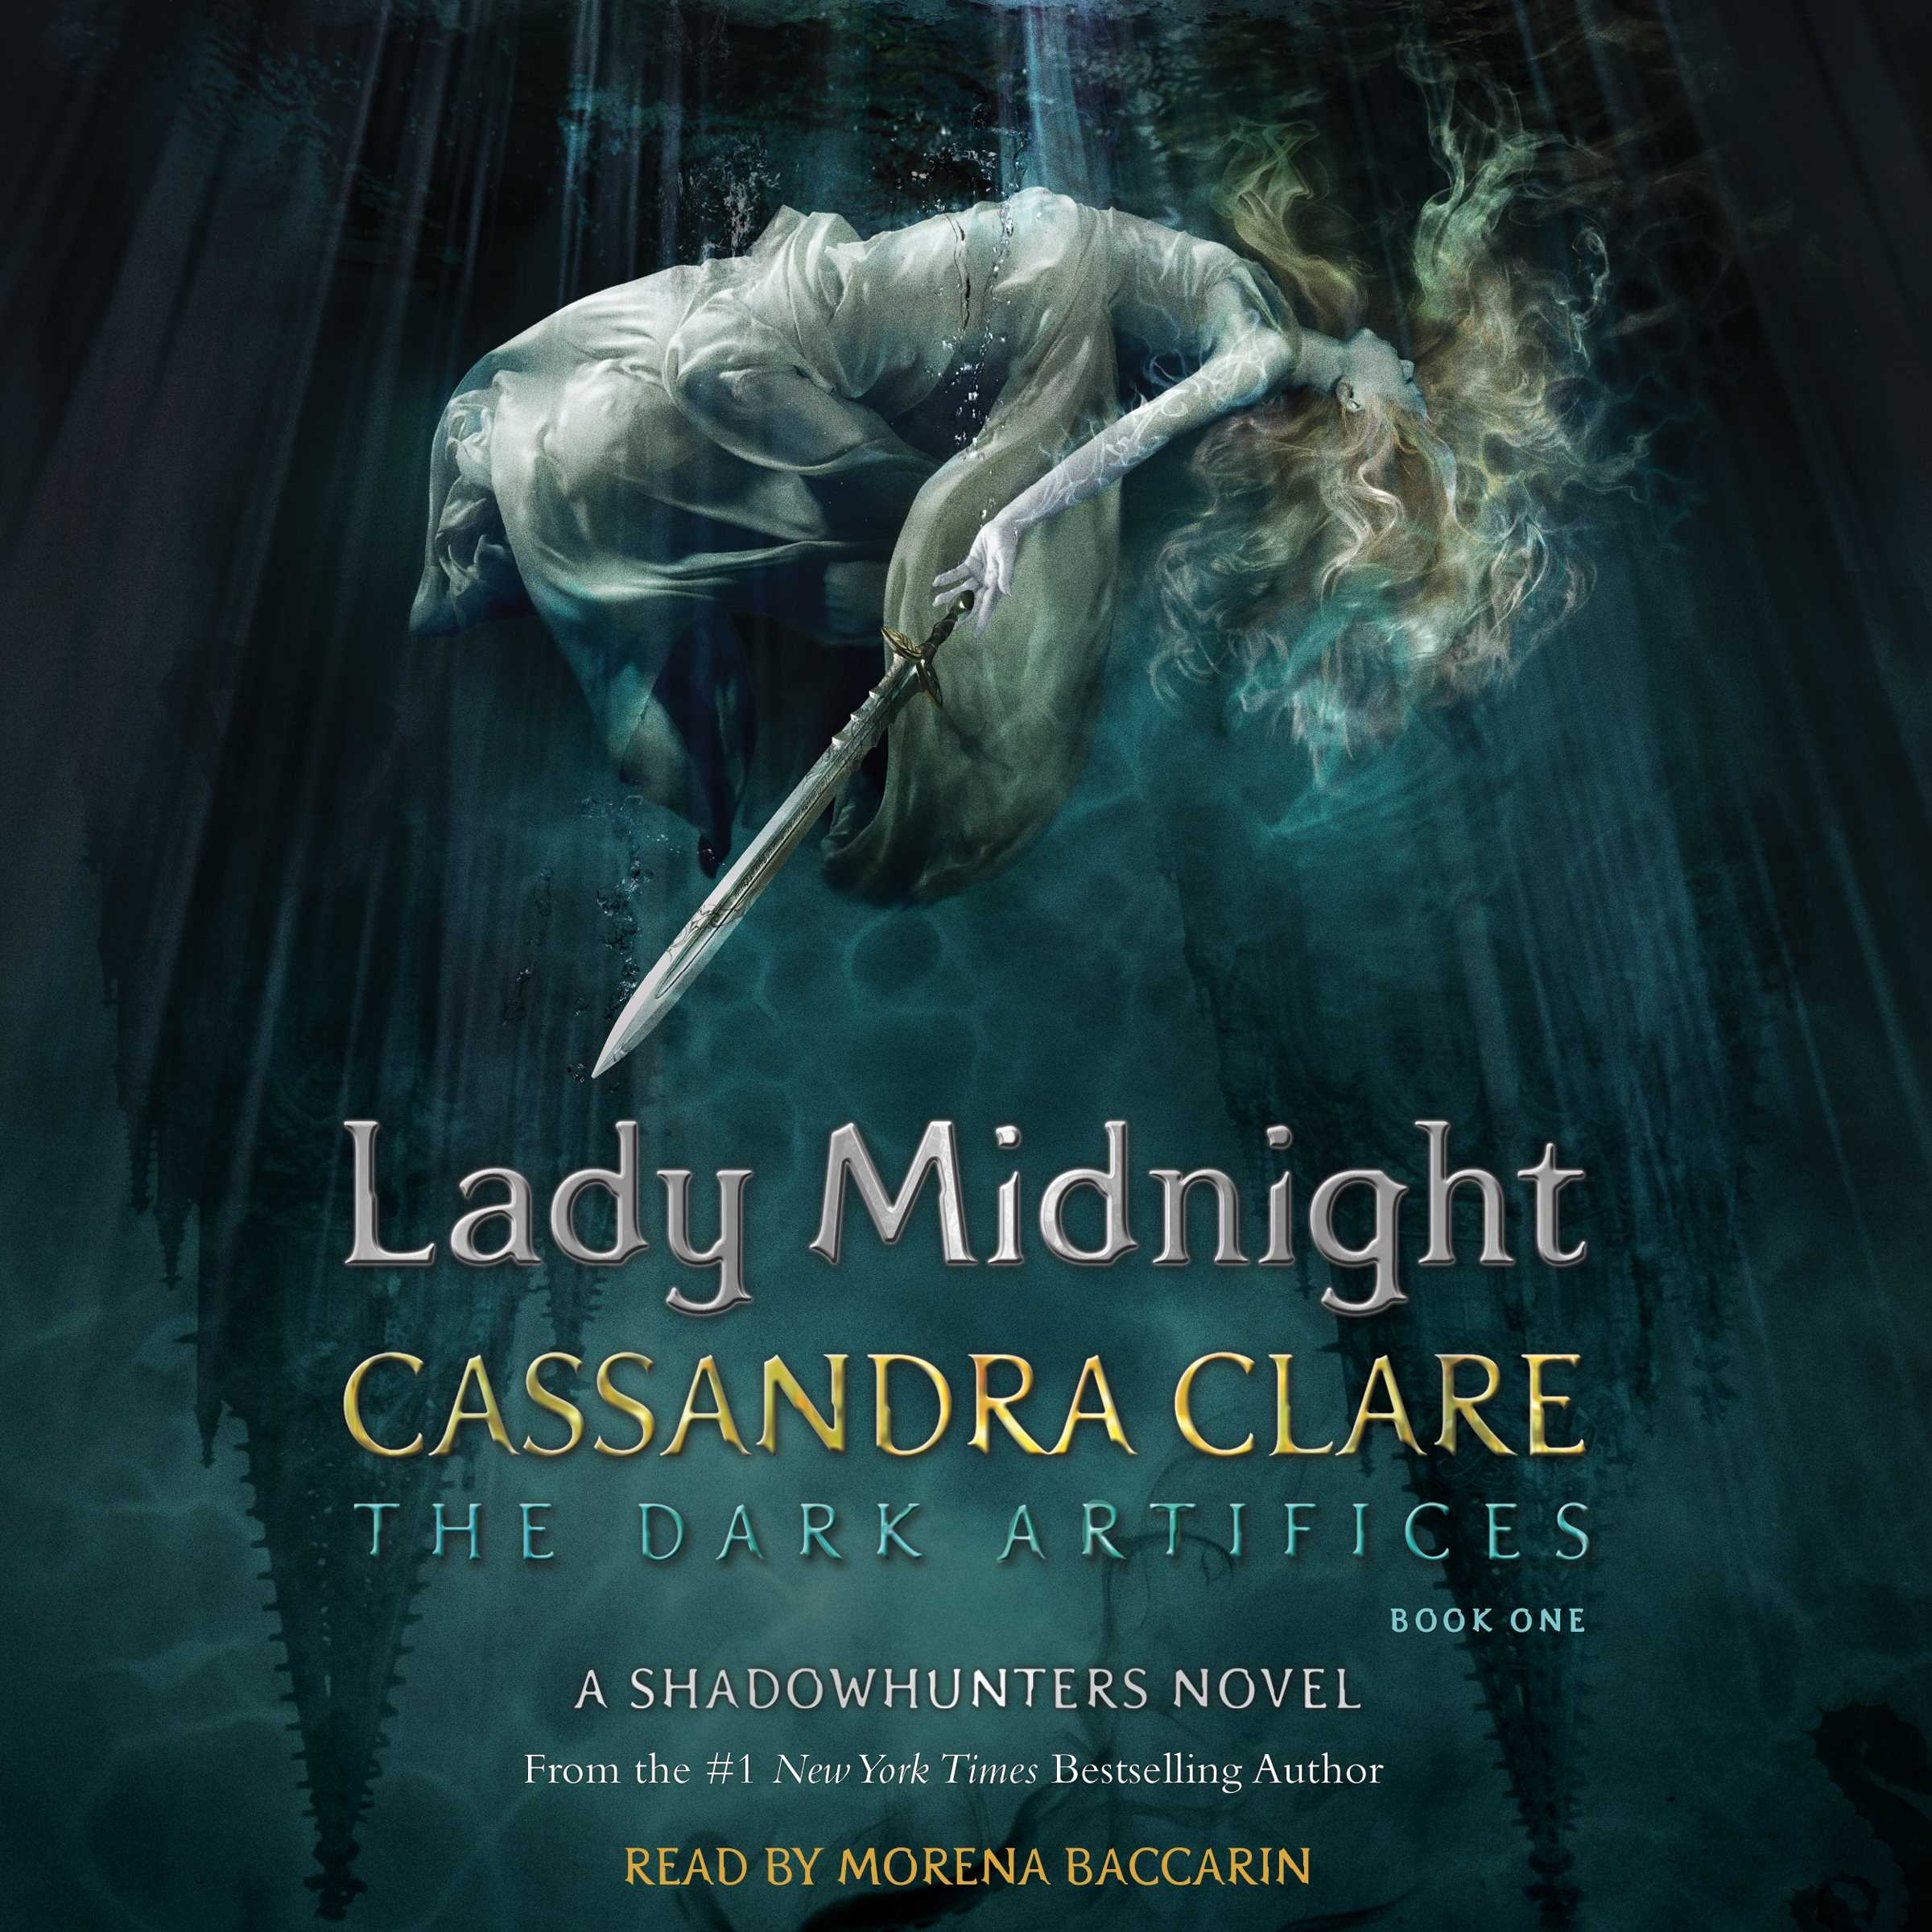 Lady midnight 9781442357112 hr